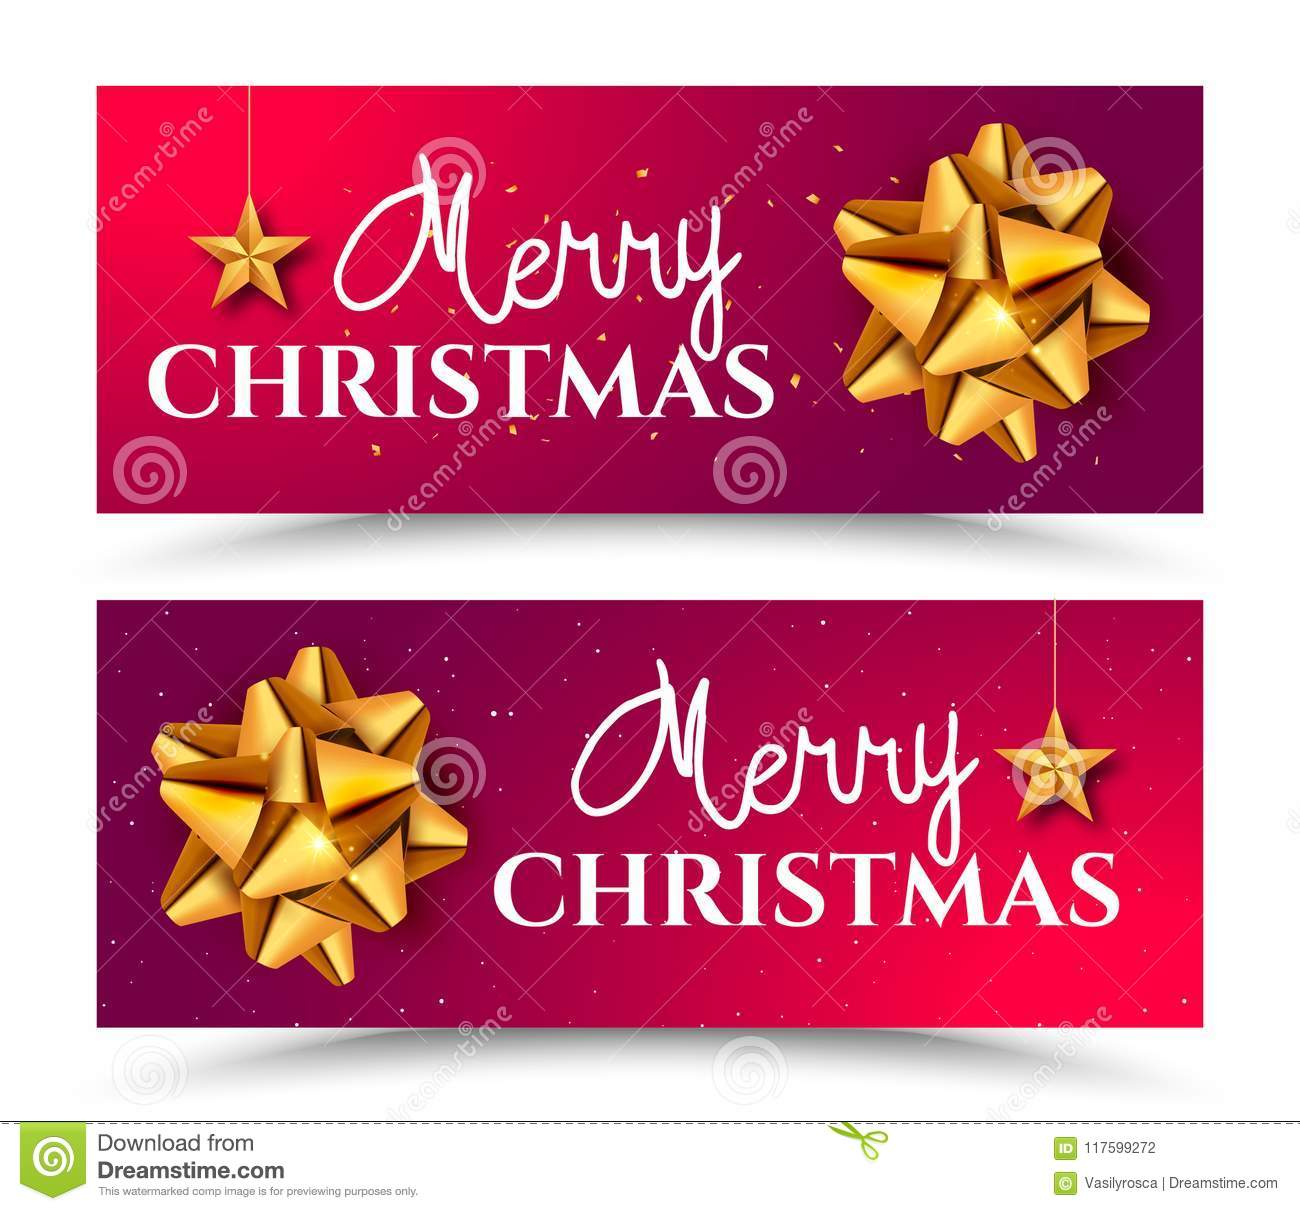 happy new year 2018 greeting card banner design template with golden bow